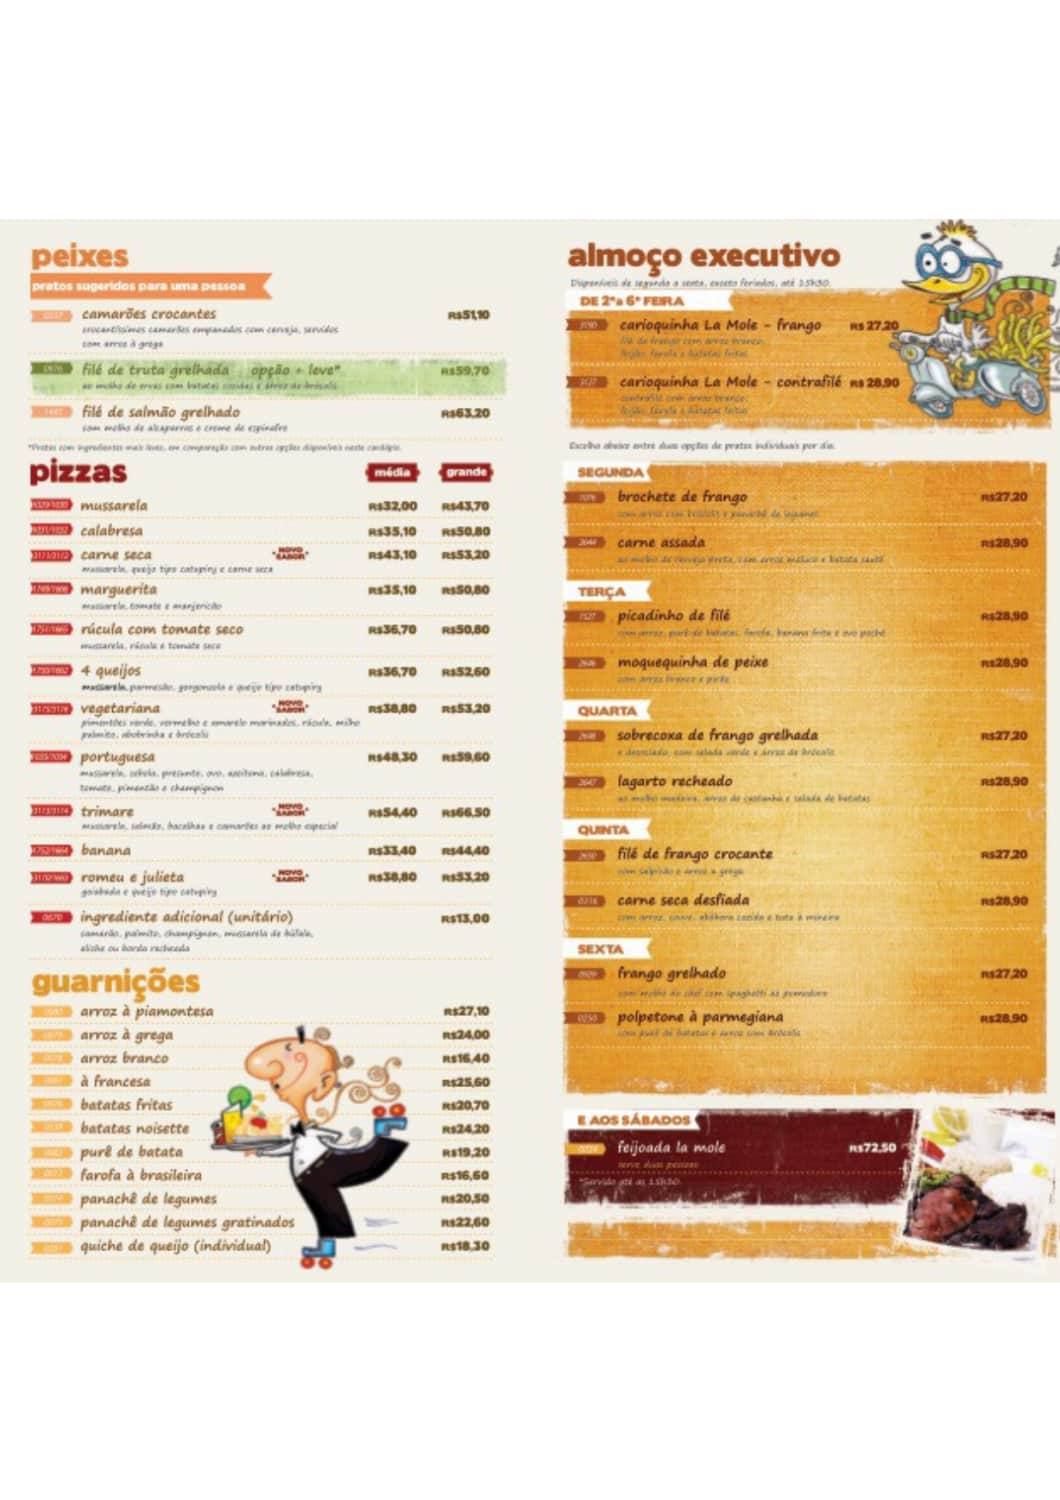 Menu do restaurante La Mole (Freguesia) - Página 1